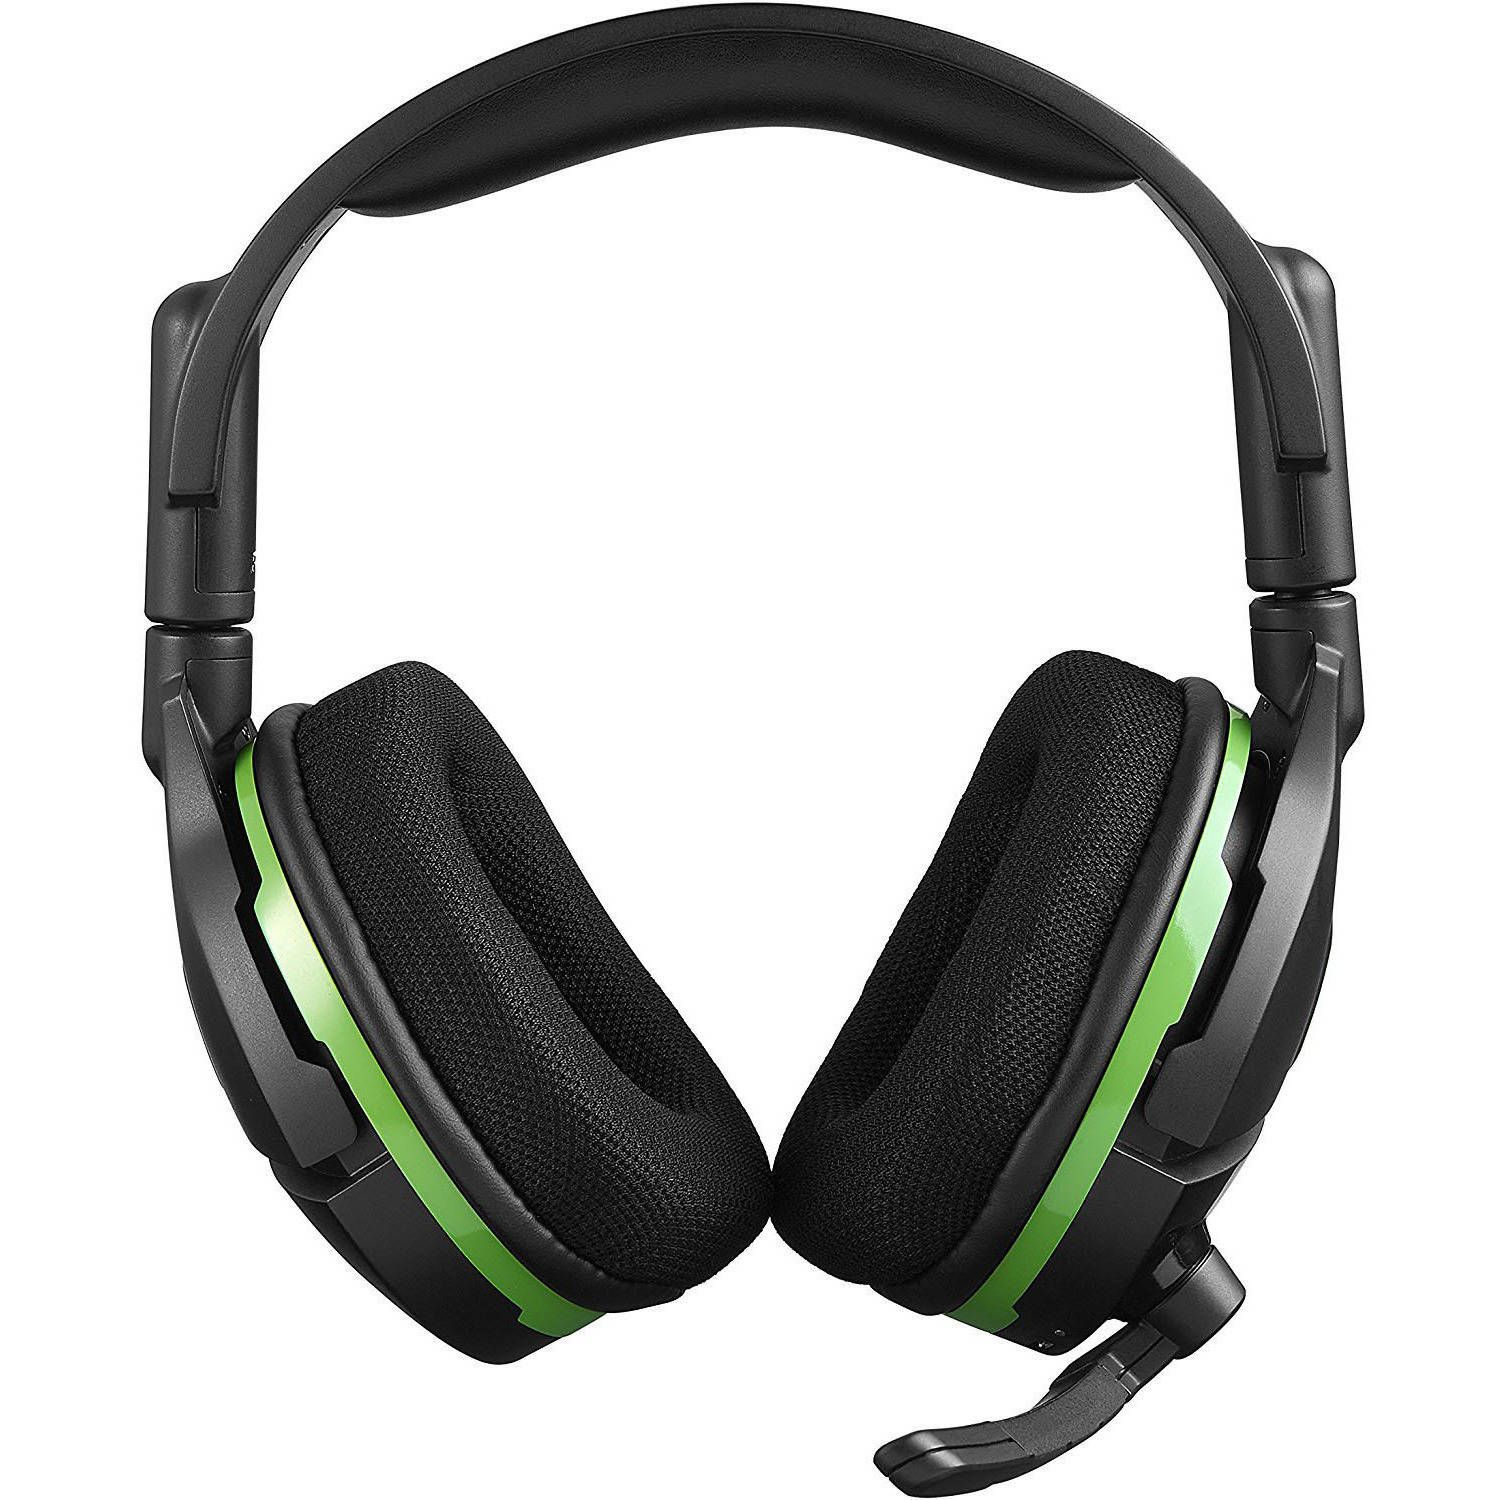 Turtle Beach Stealth 600 Wireless Gaming Headset For Xbox One Black Ad Stealth Affiliate In 2020 Wireless Surround Sound Wireless Gaming Headset Gaming Headset